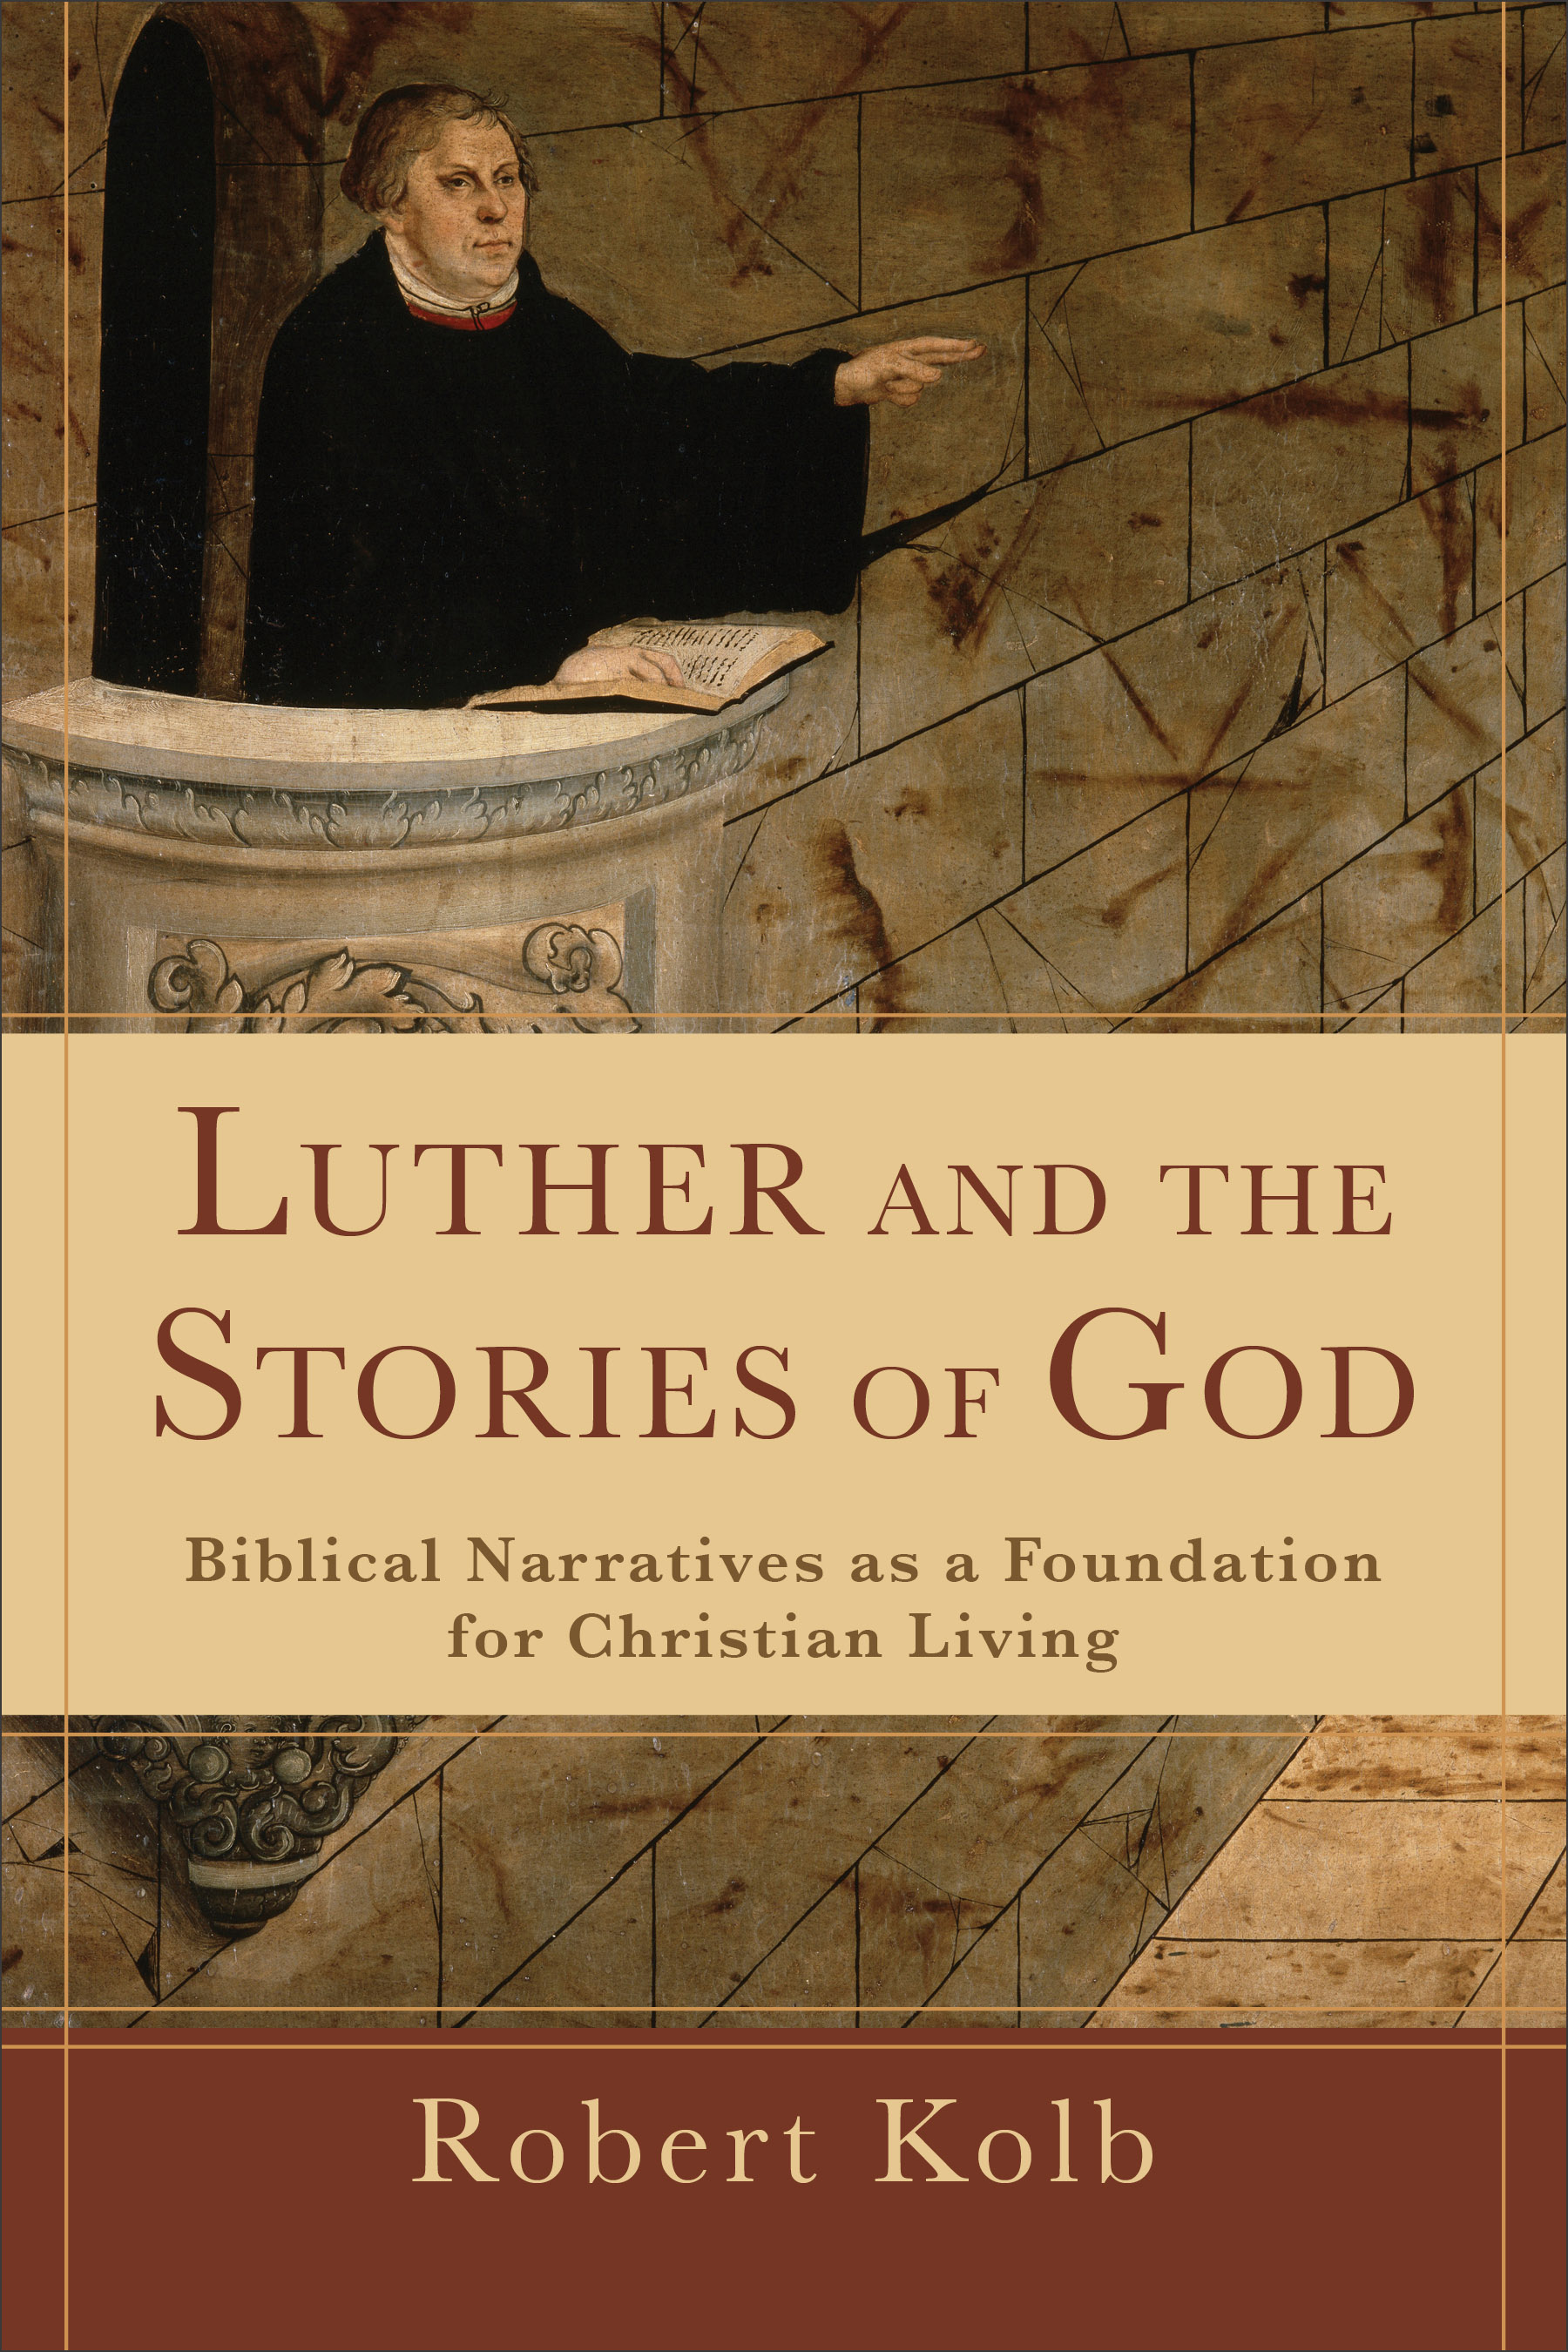 Luther and the Stories of God